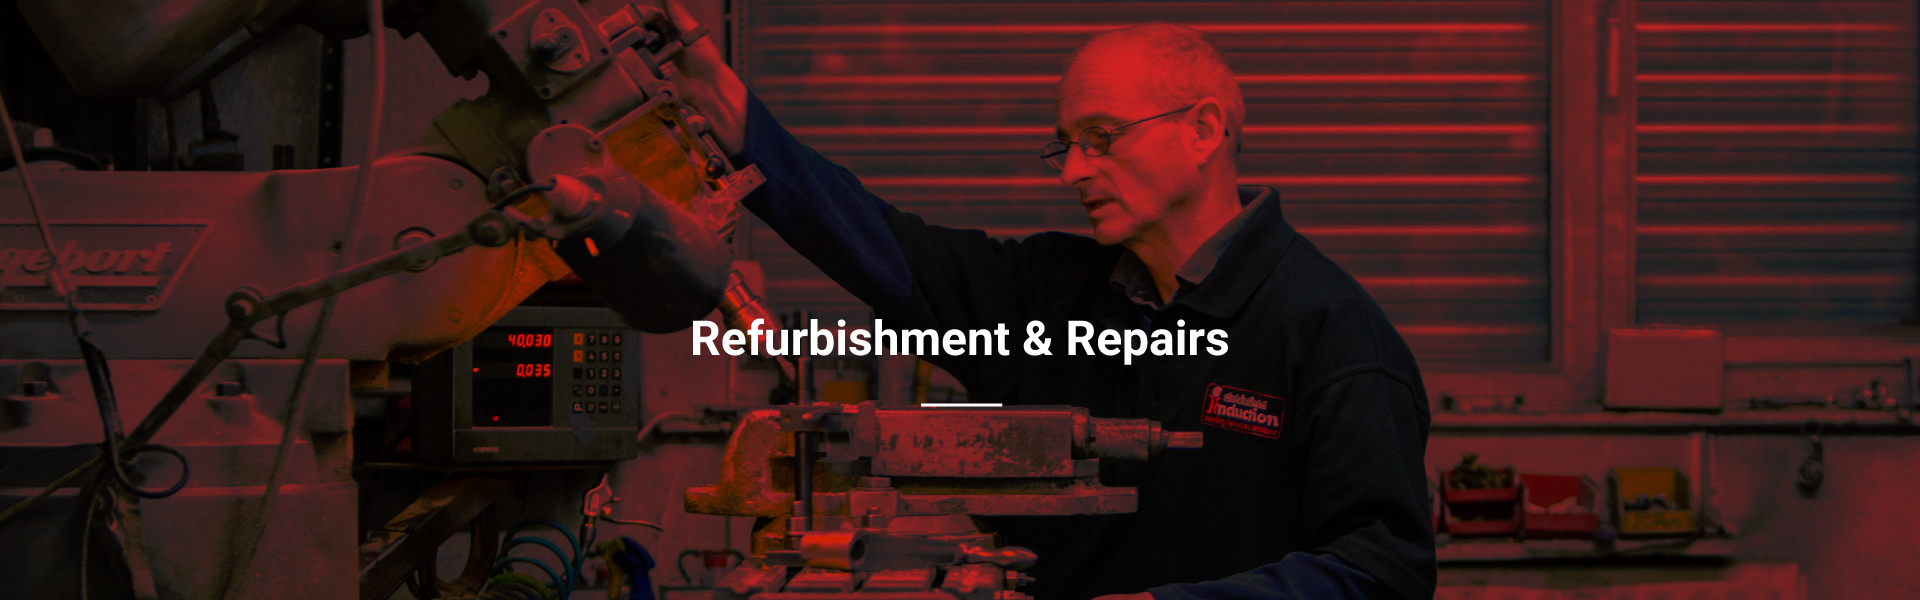 Banner image for Refurbishment and Repairs